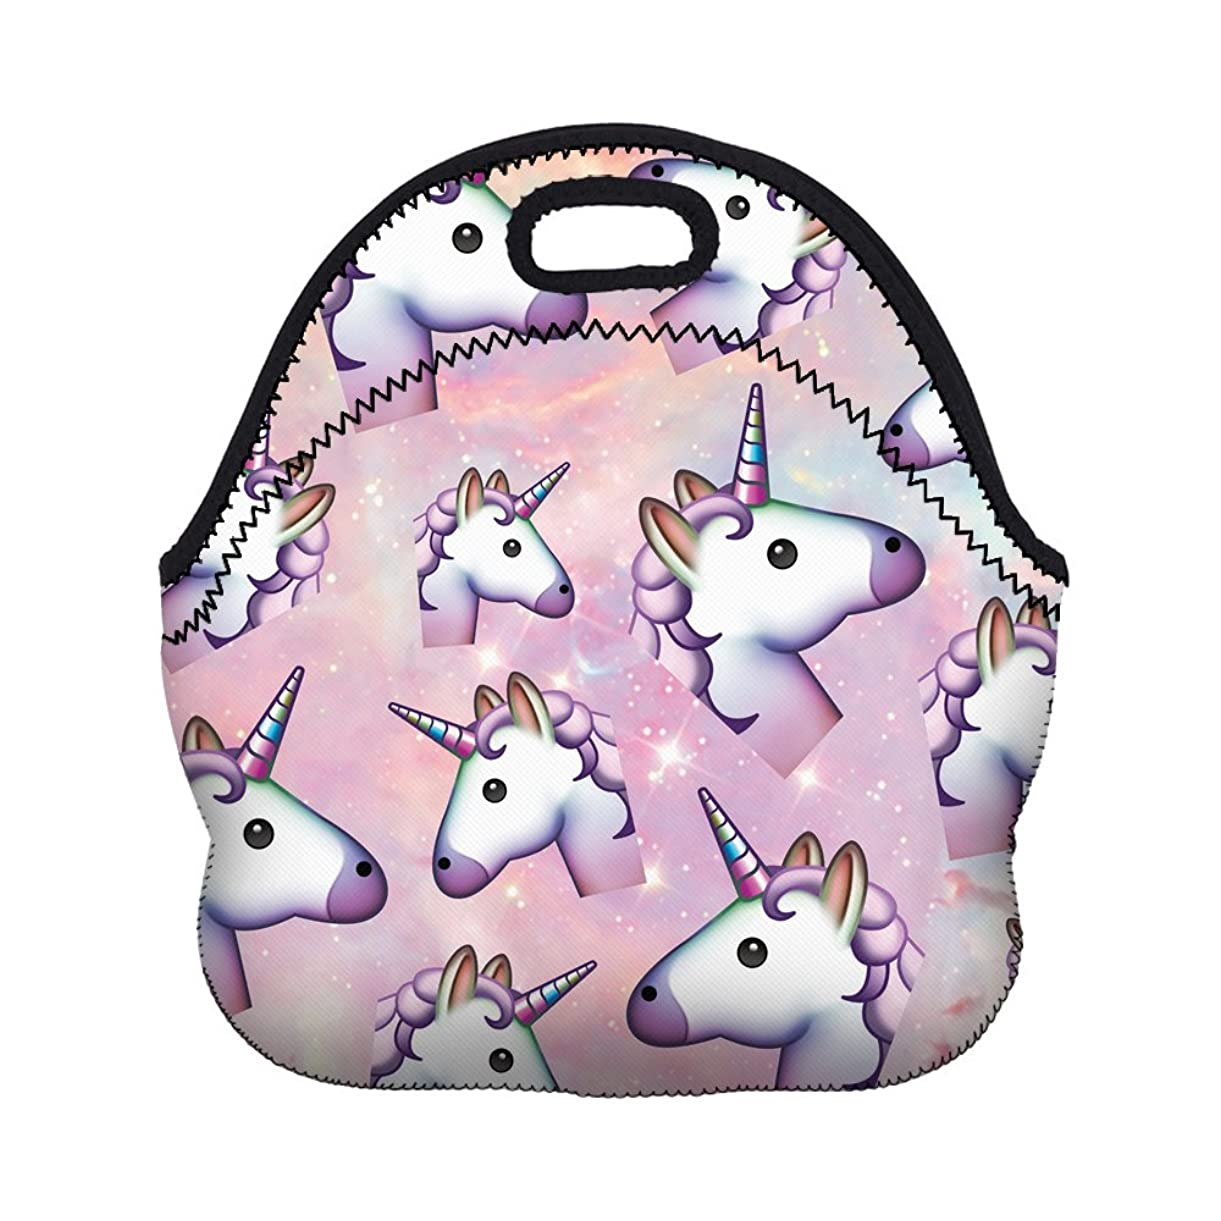 Boys Girls Kids Women Adults Insulated School Travel Outdoor Thermal Waterproof Carrying Lunch Tote Bag Cooler Box Neoprene Lunchbox Container Case For Outdoors,Work,Office,School (Nice Unicorns) leoox6997